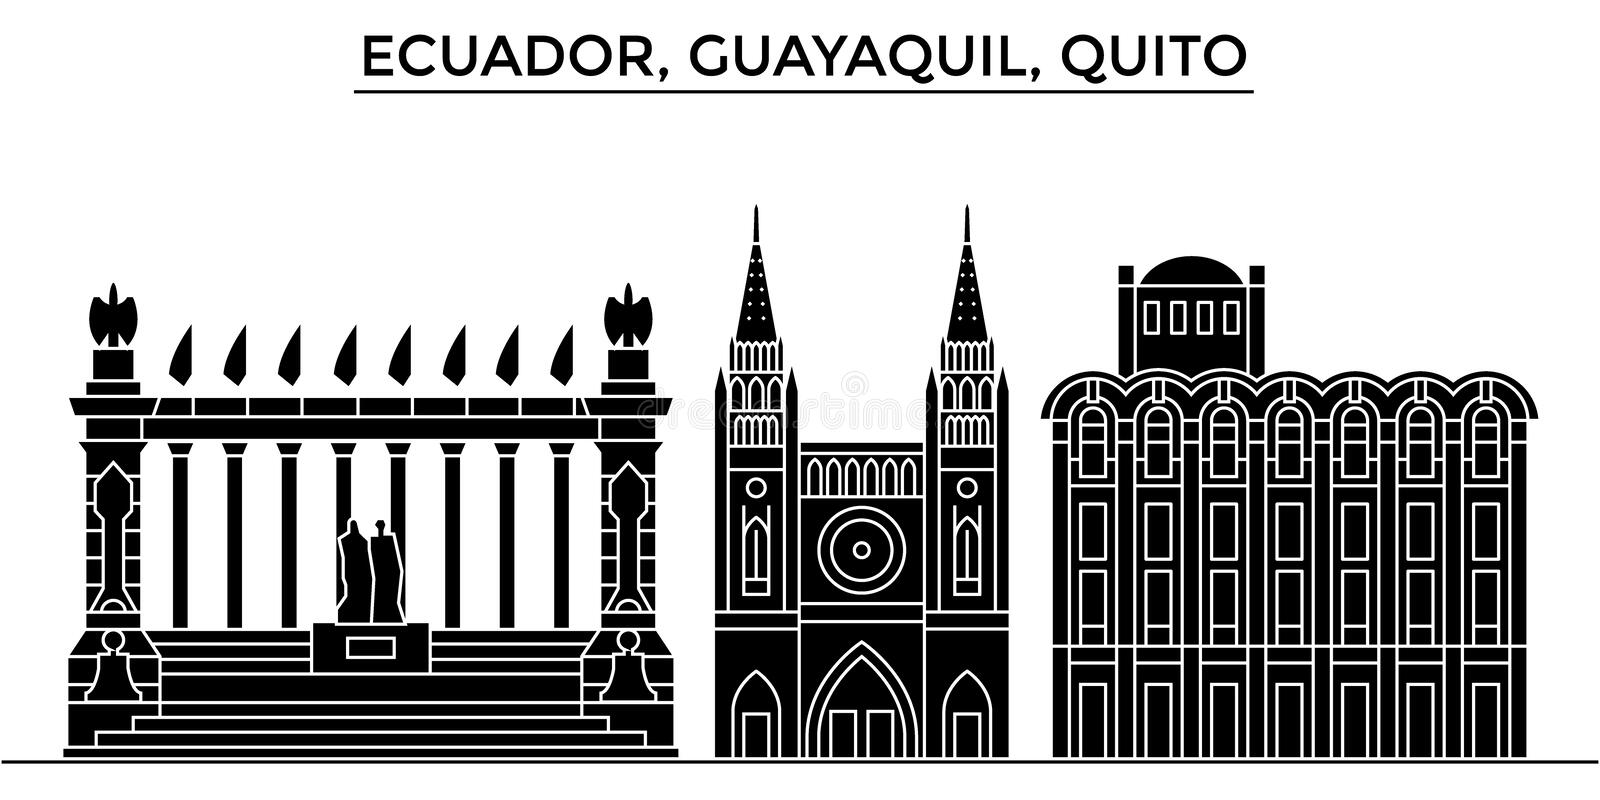 Ecuador, Guayaquil, Quito architecture vector city skyline, travel cityscape with landmarks, buildings, isolated sights stock illustration